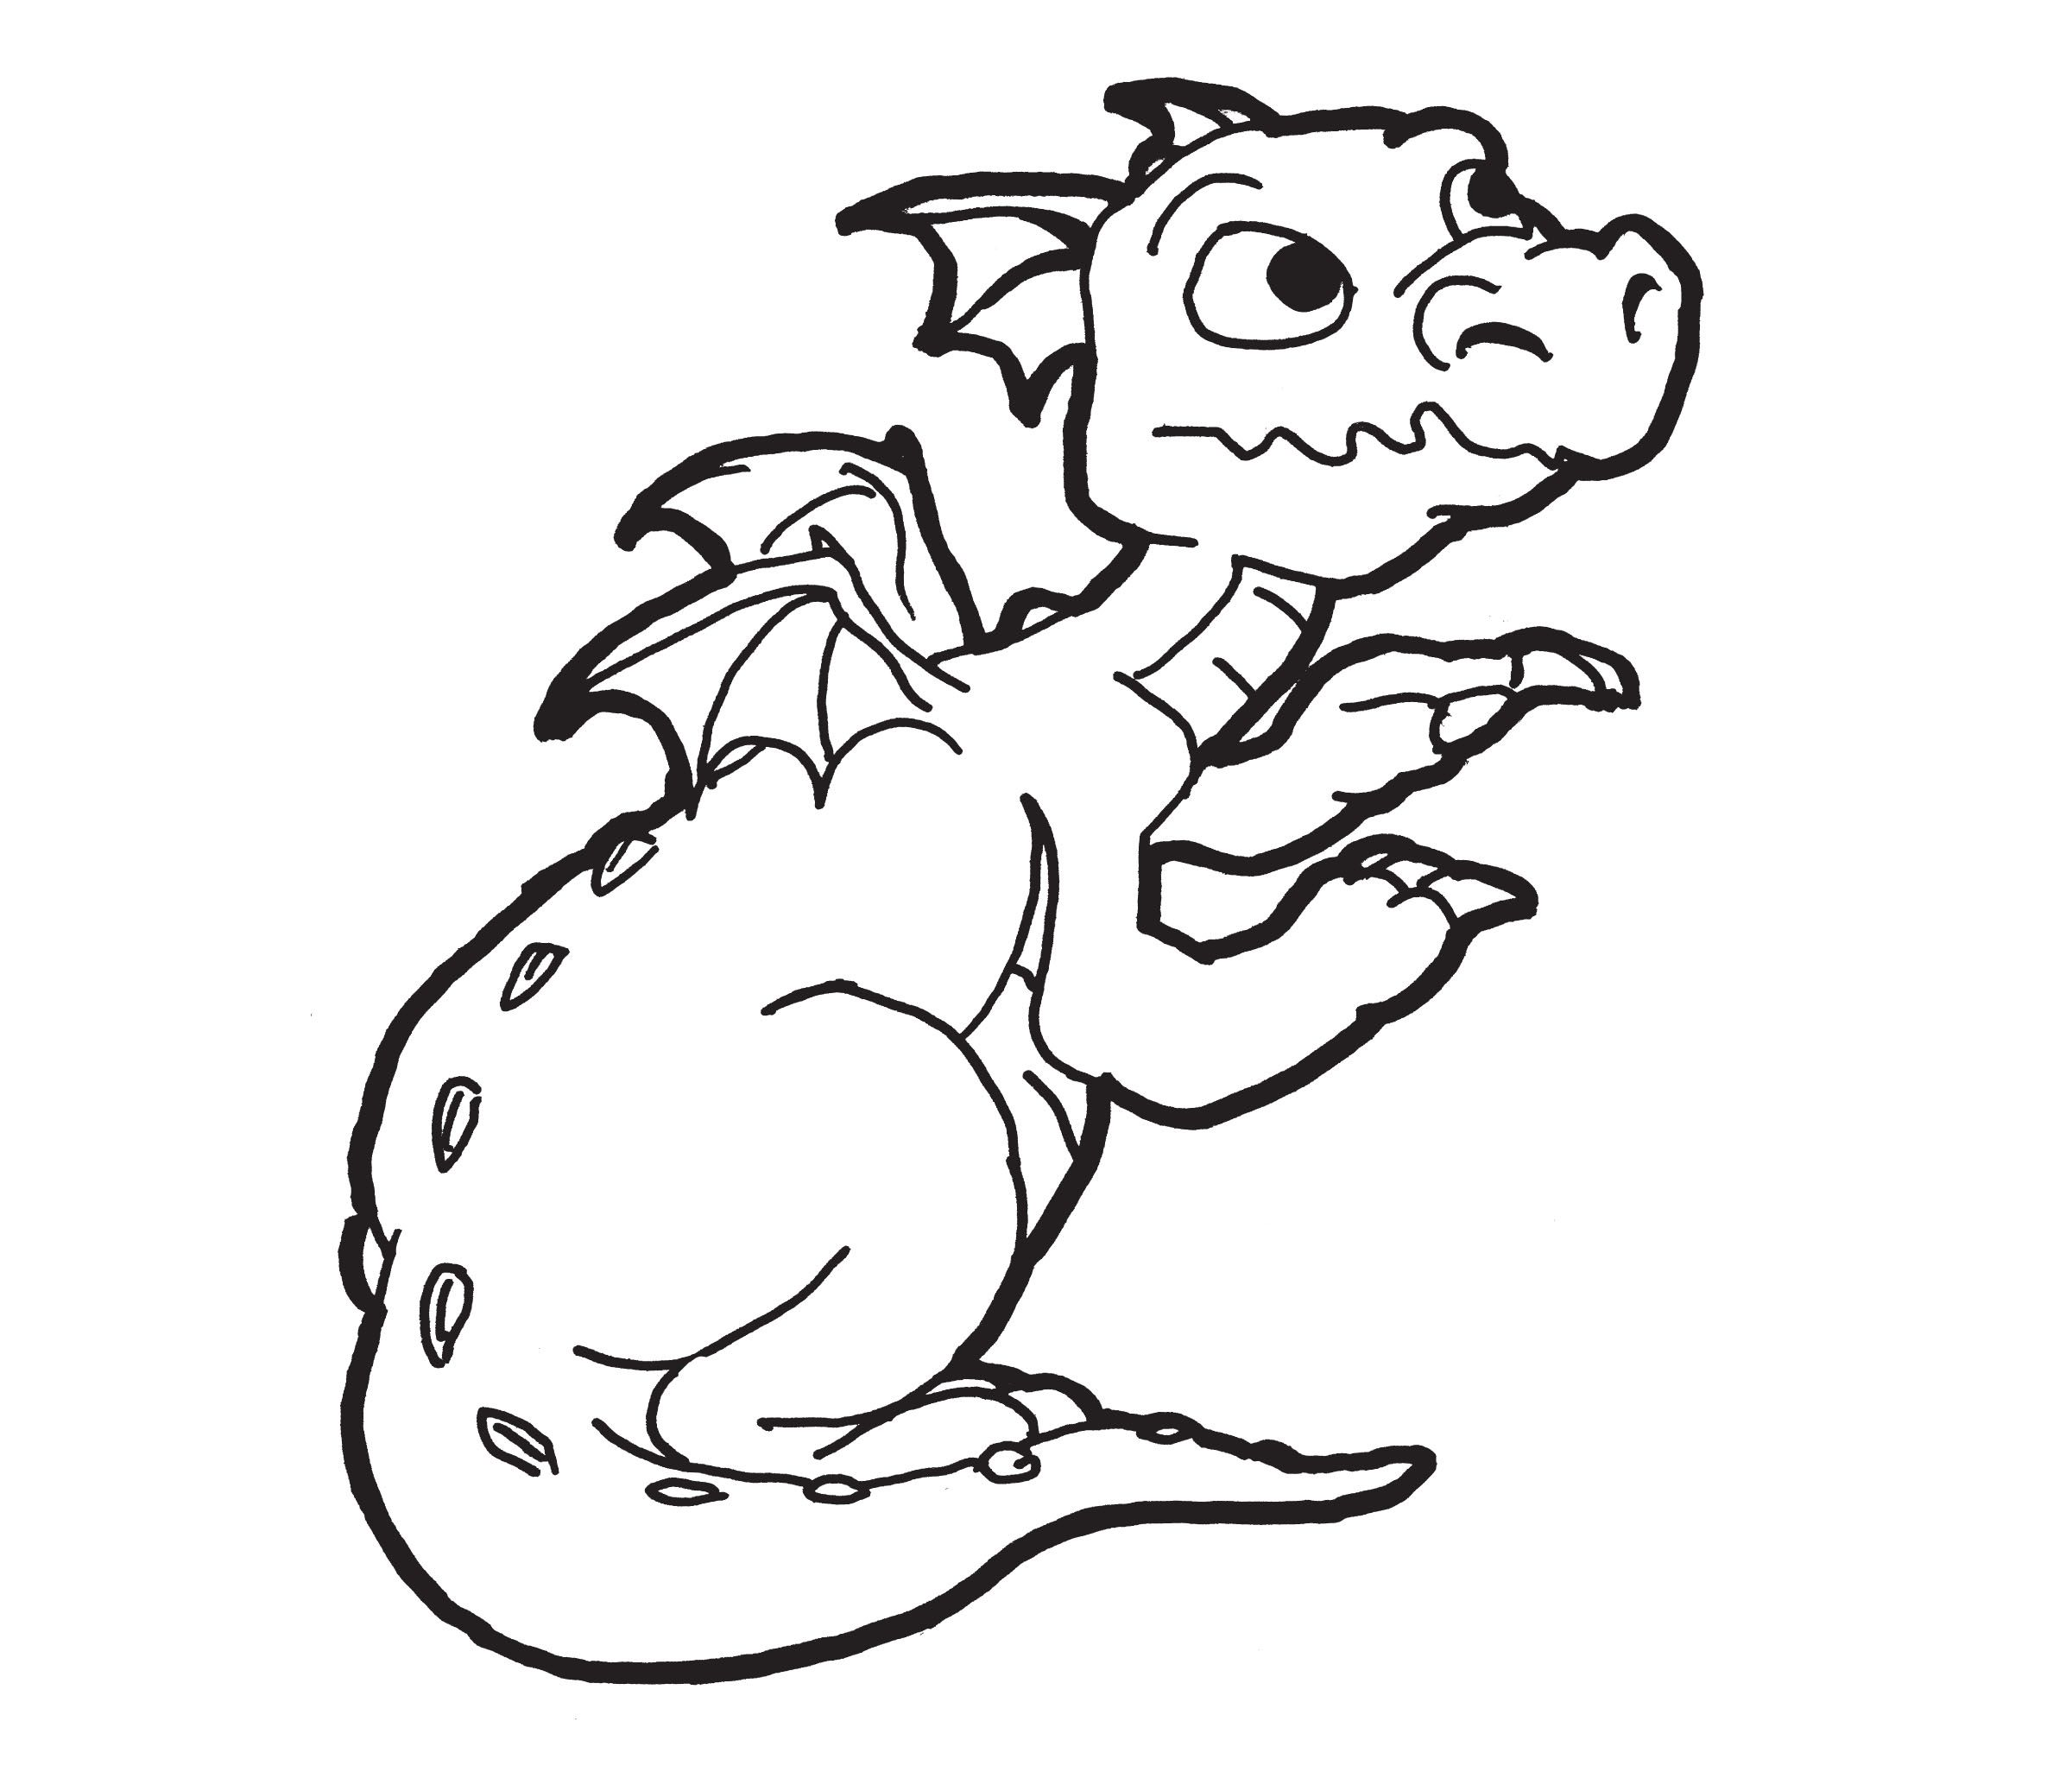 Free Printable Dragon Coloring Pages For Kids More Vbs Ideals